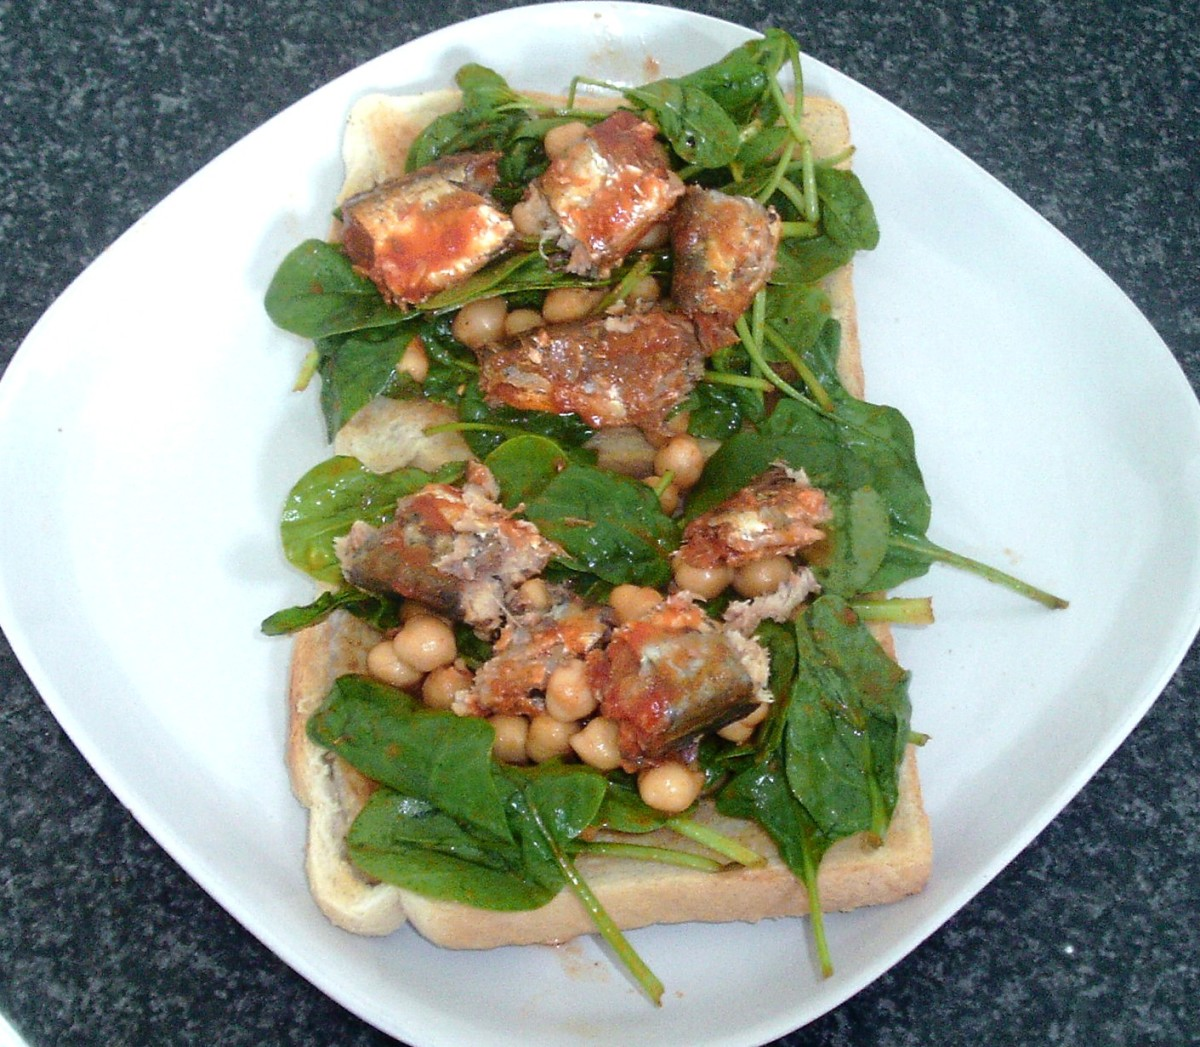 Sardines top spicy tomato chickpeas and spinach on toast